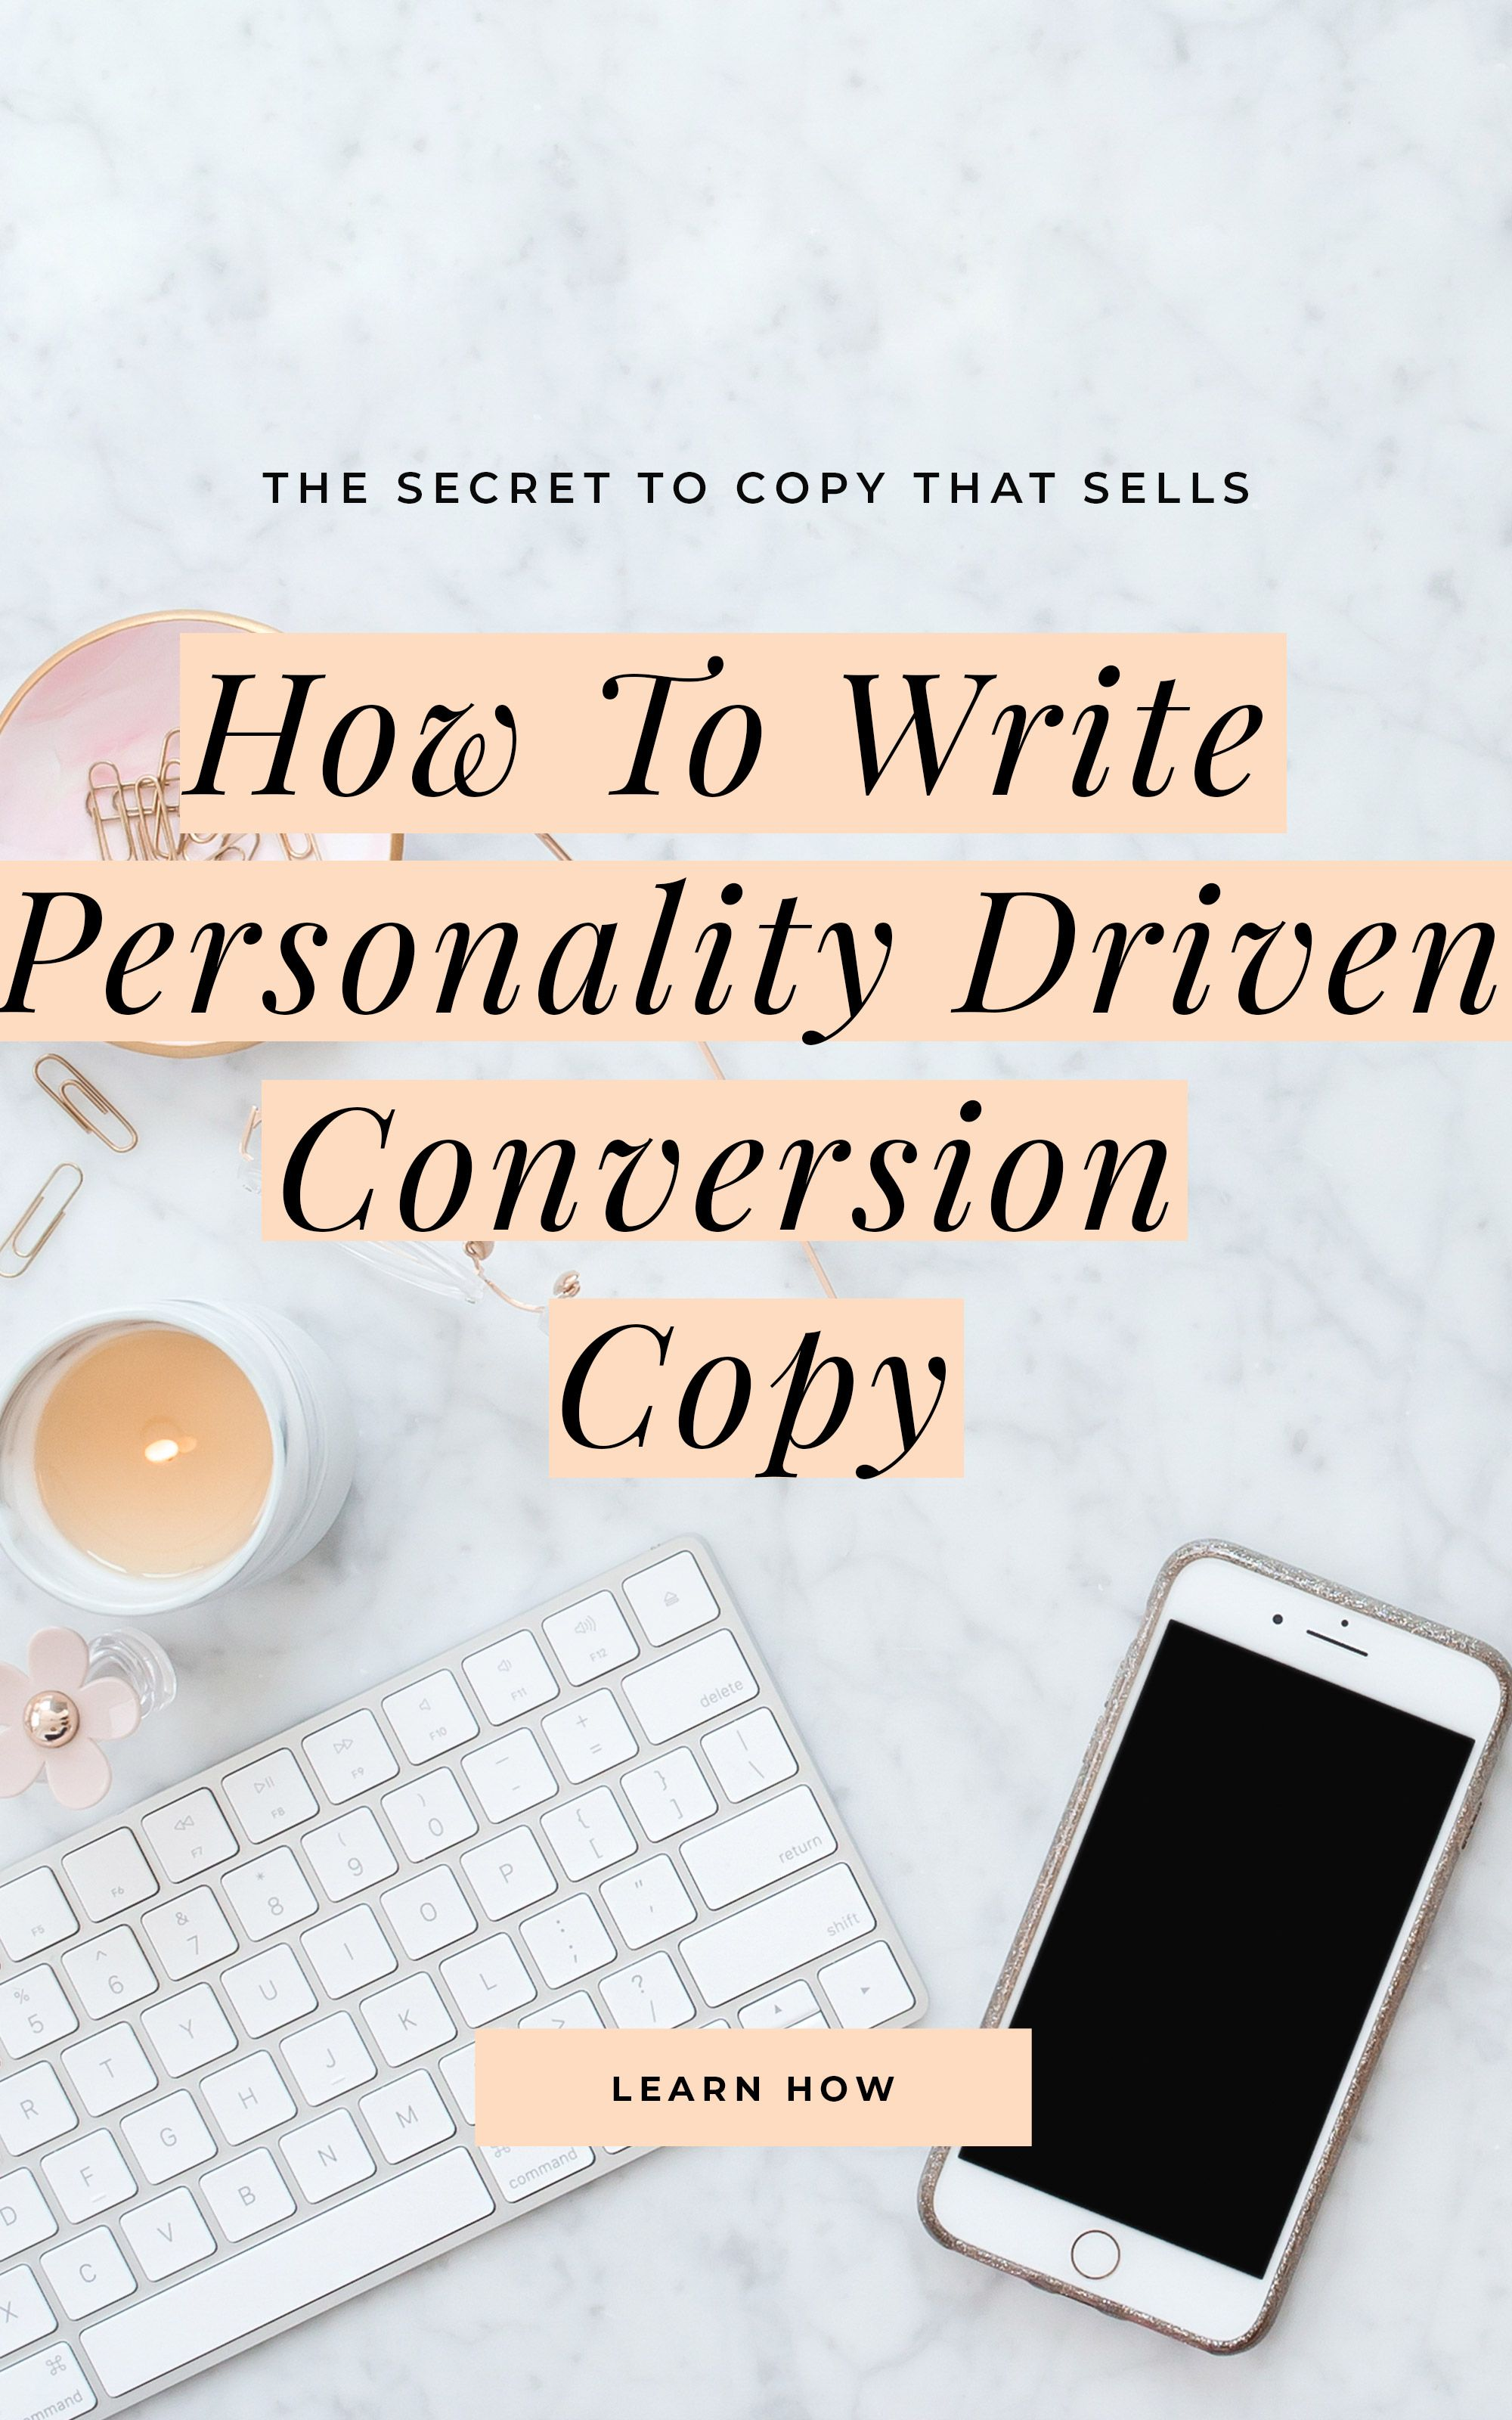 Zafira Rajan shares how to write personality driven copy, and why it matters on The Power in Purpose Podcast. #businesspodcast #copywritingtips #copywriting